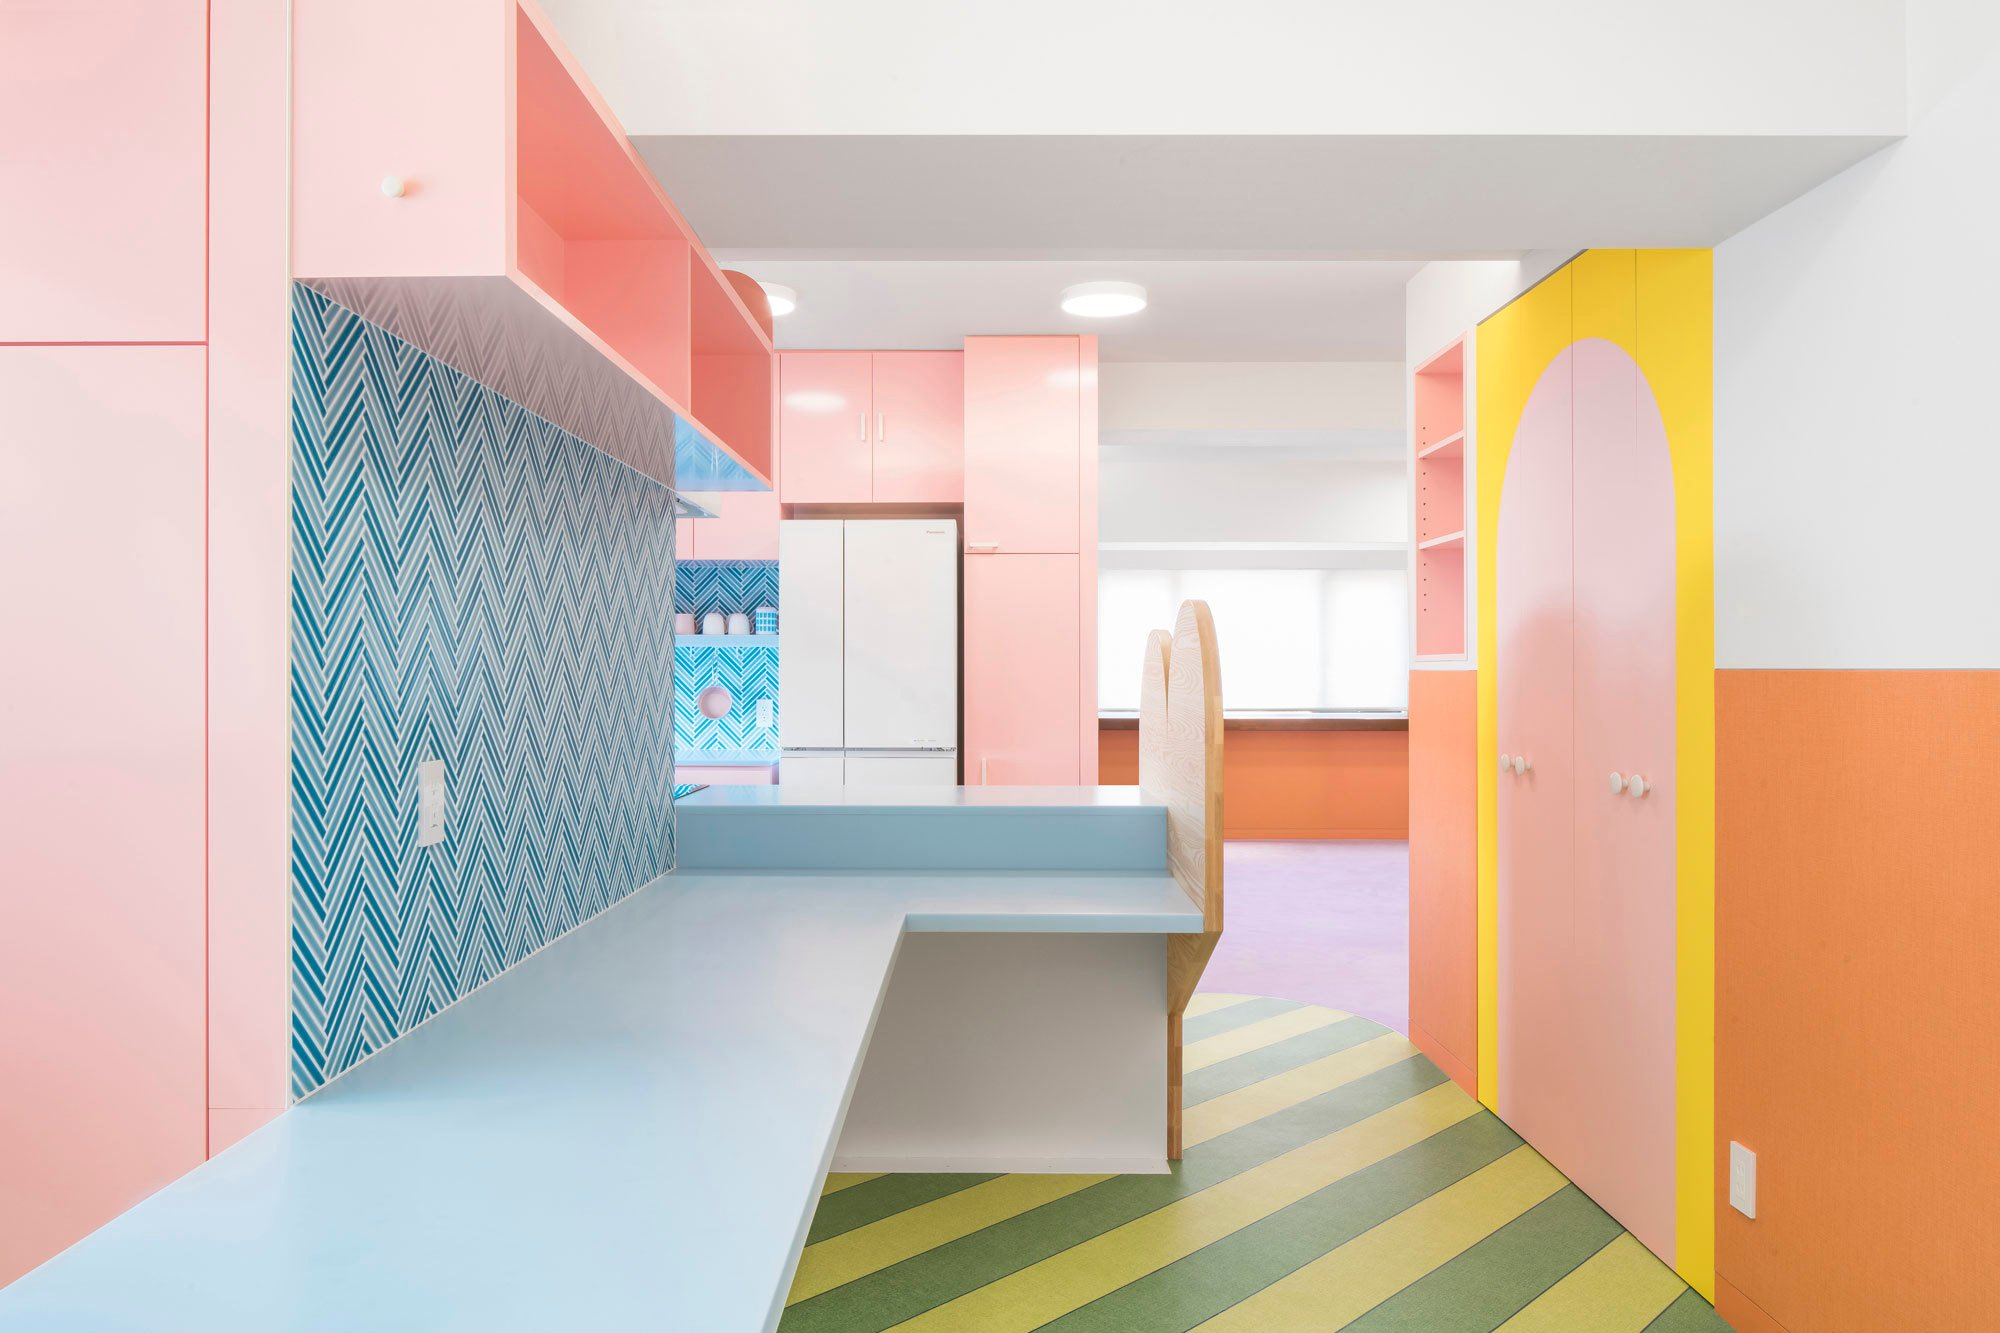 Nagatacho Apartment, Tokio, Adam Nathaniel Furman, 2020, Foto: Jan Vranovsky